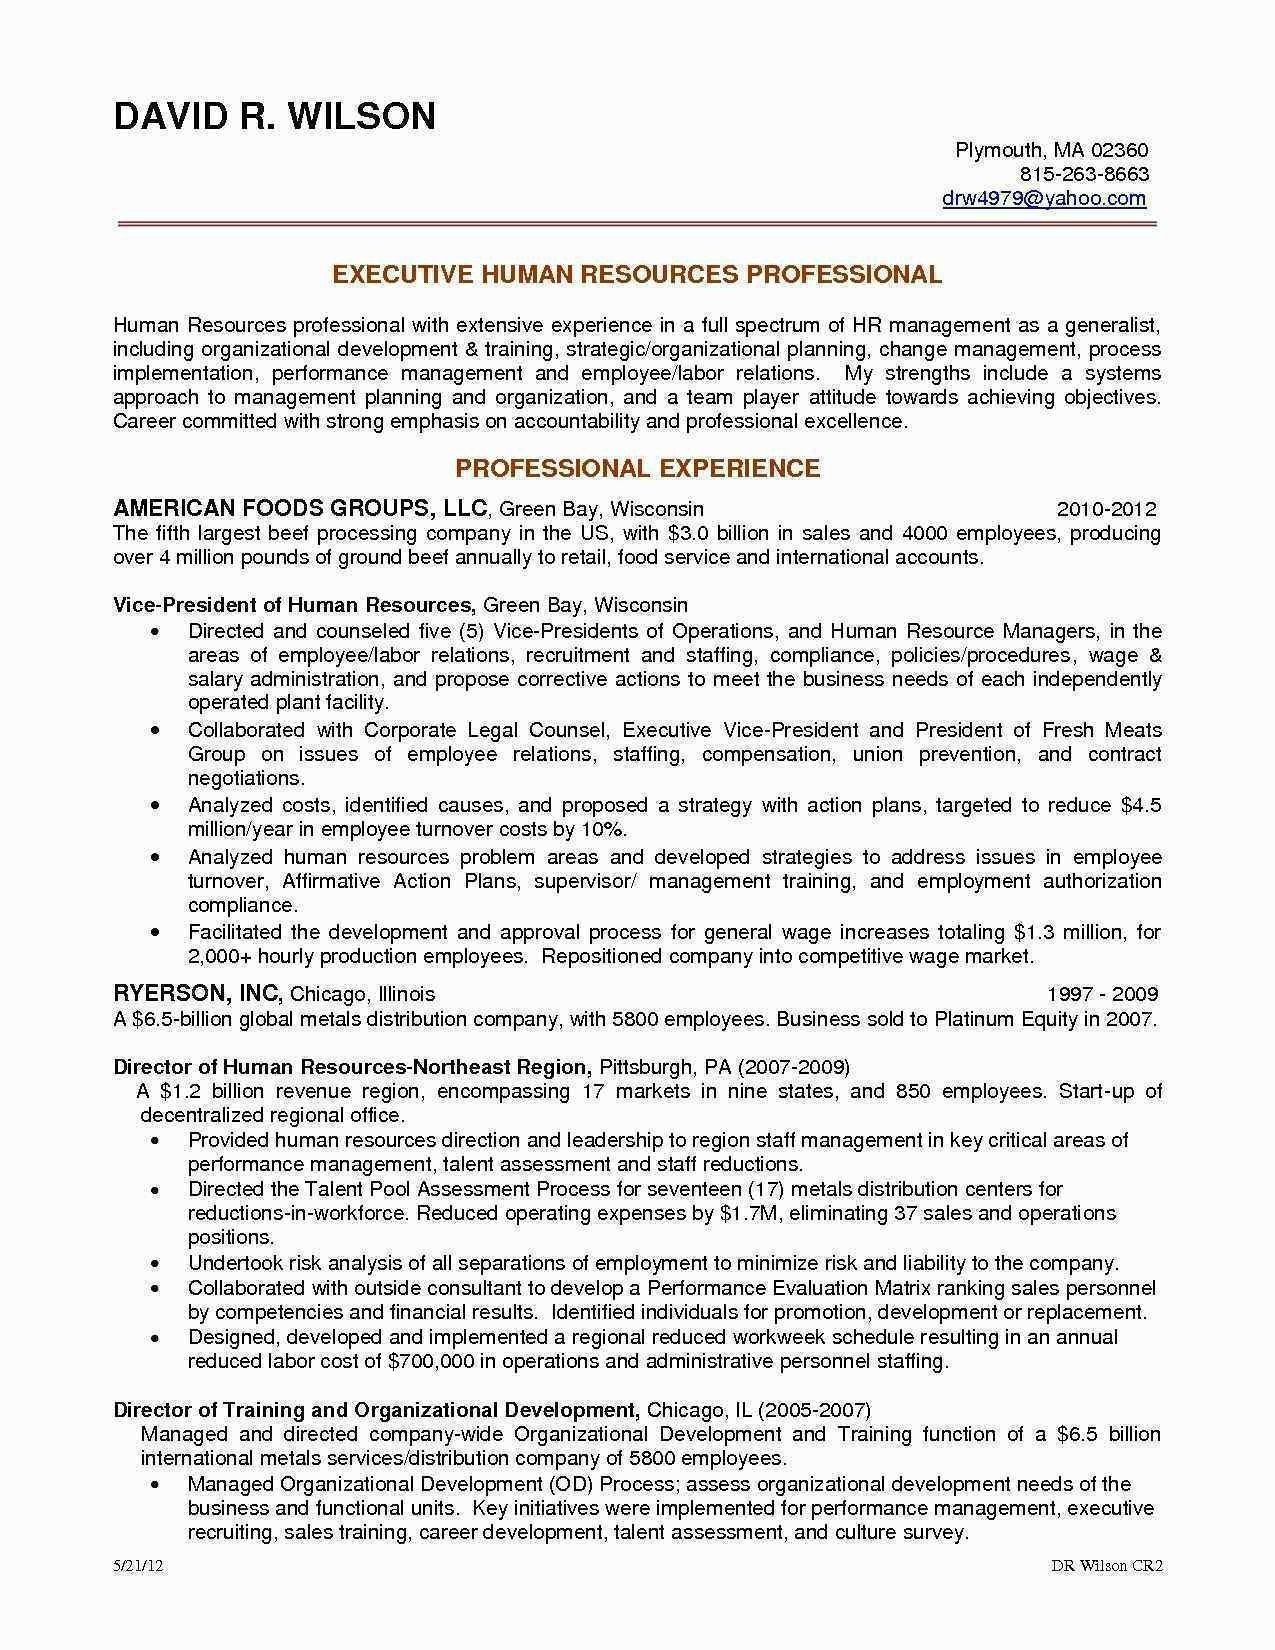 Business Systems Analyst Resume Sample Unique Best Management Analyst Resume Resume Objective Examples Project Manager Resume Resume Examples